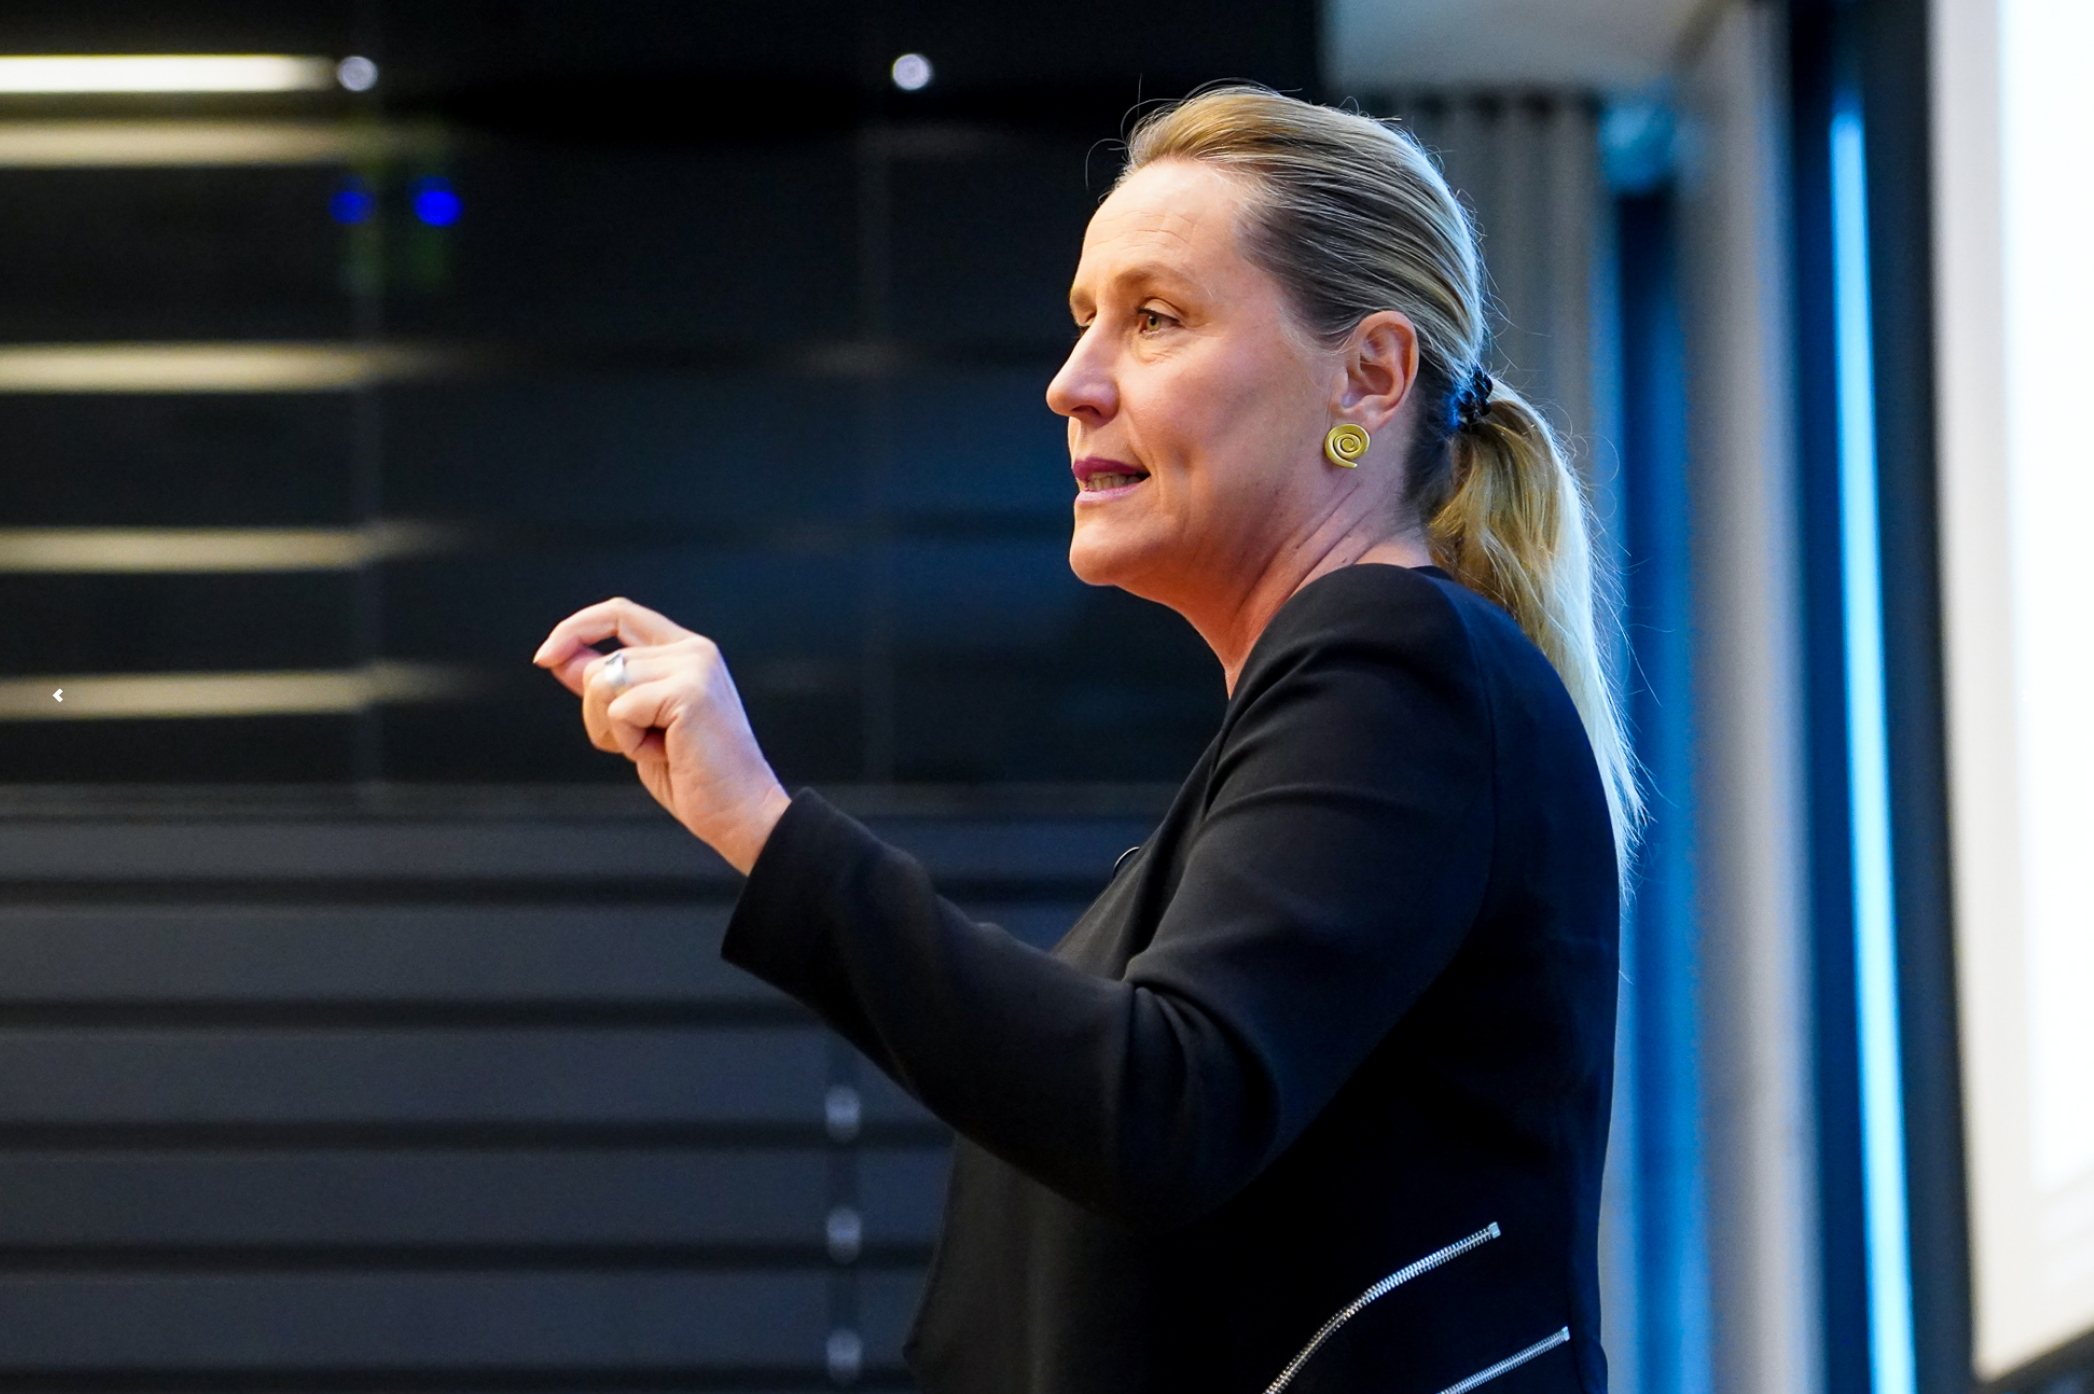 """There's more rigour in the marketing department than the HR department"". - Professor Iris Bohnet at the Behavioural Approach to Diversity Conference."